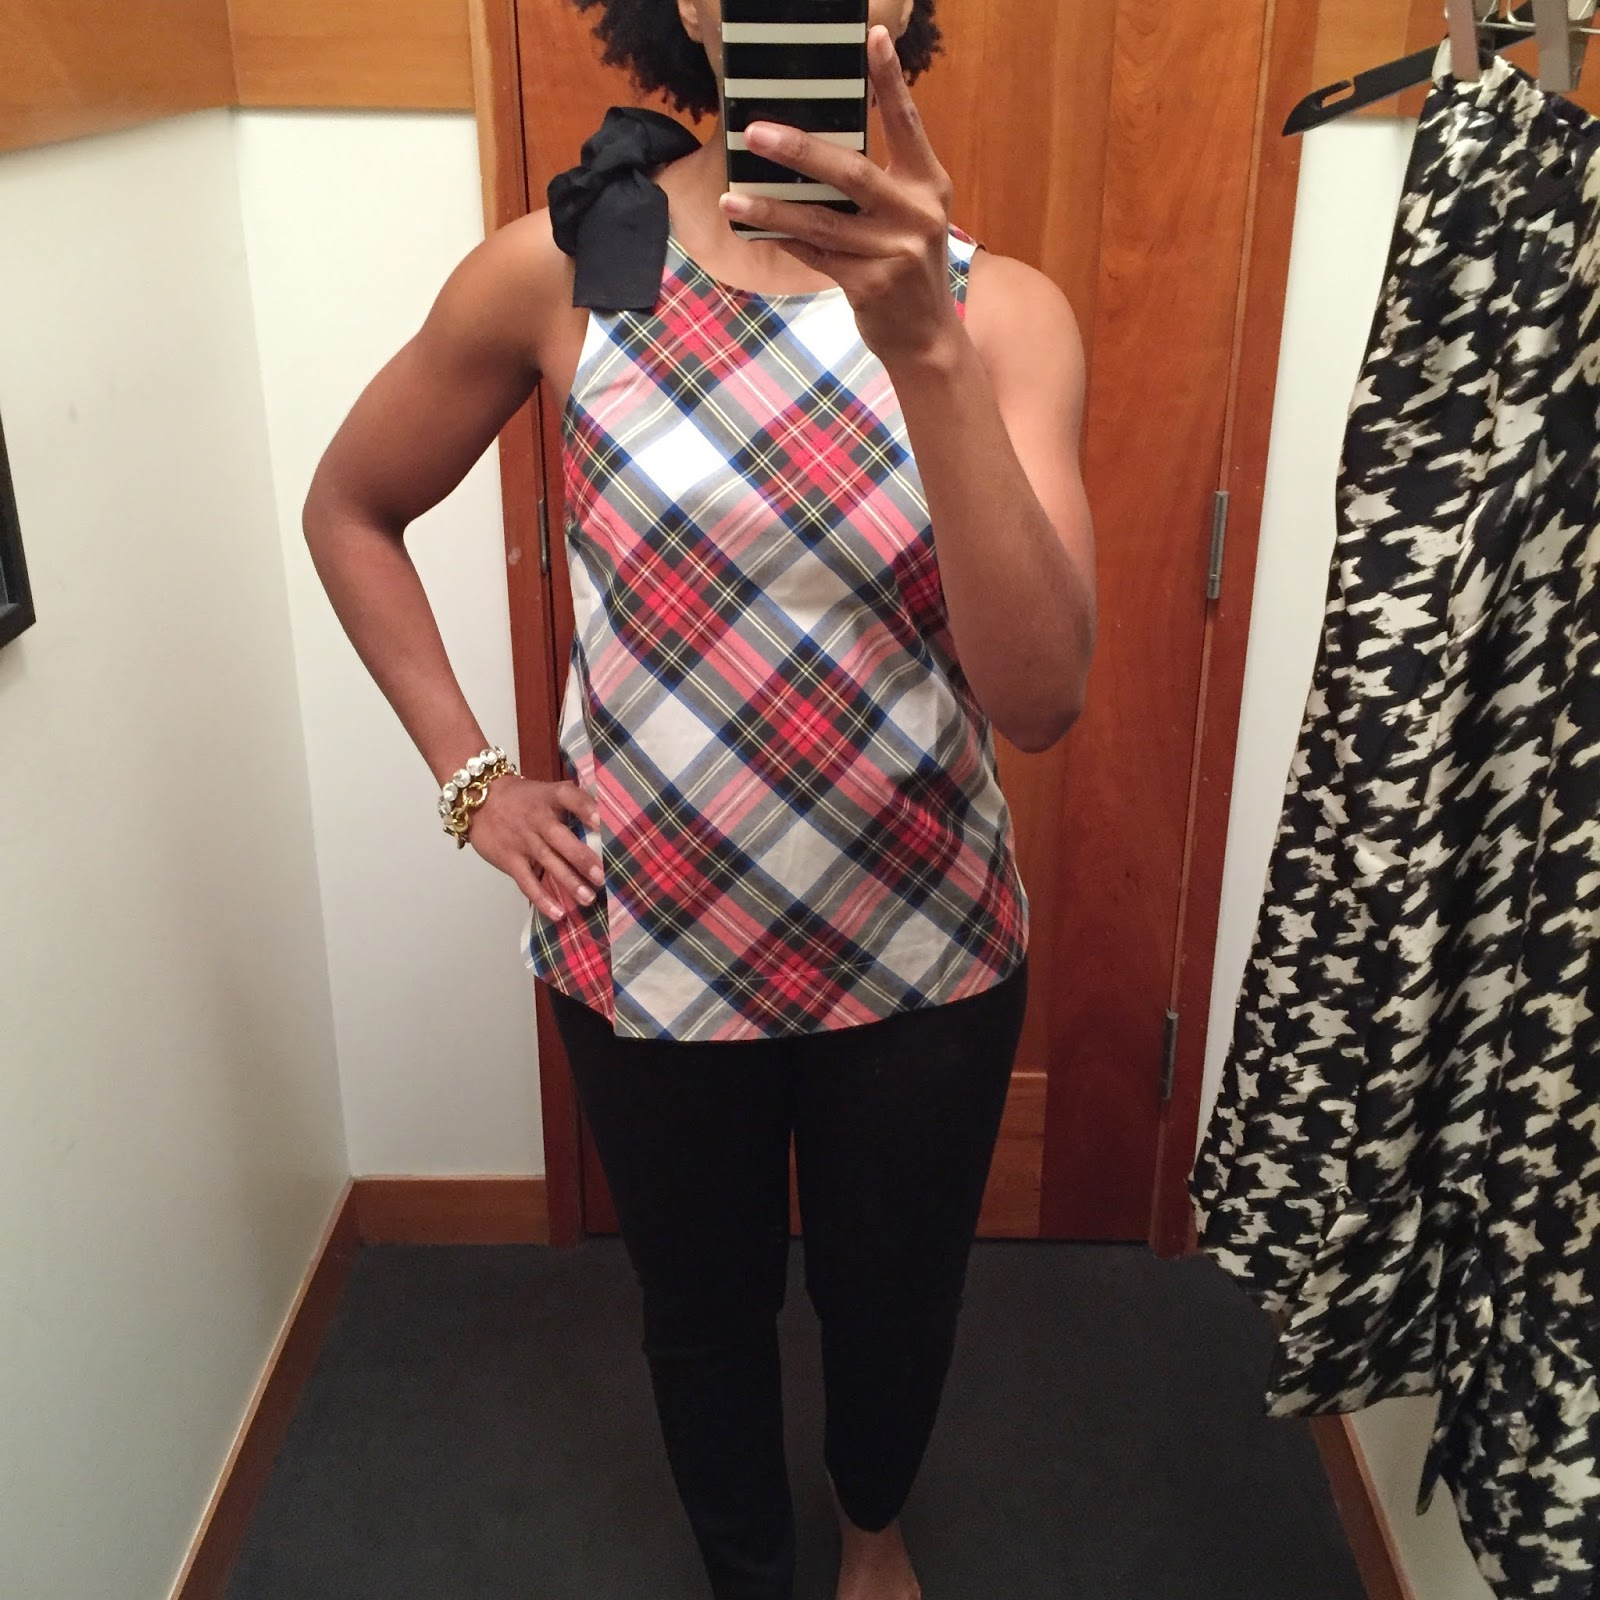 1e6e4697e4 Anyways, here are a few of my fitting room review of some of my favorite  new arrivals. Let me know what you think.